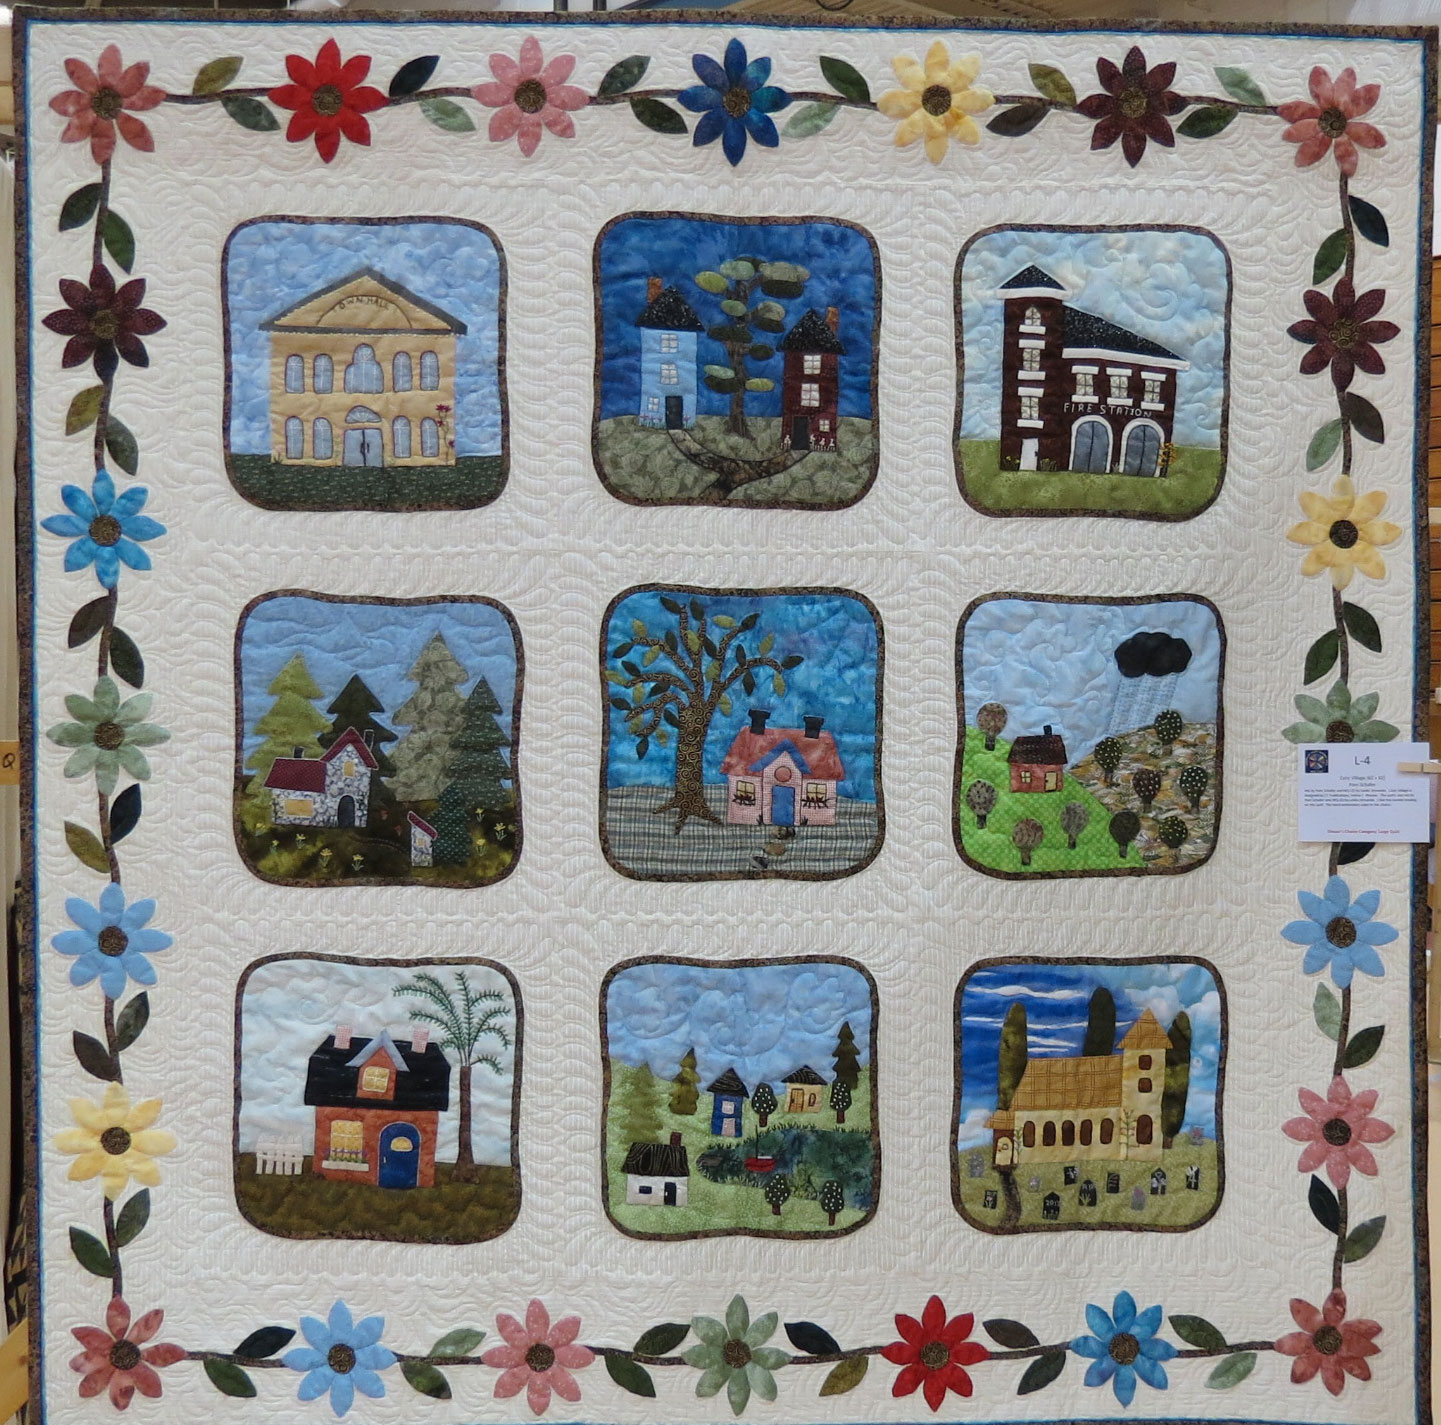 quilt by Pam Schafer